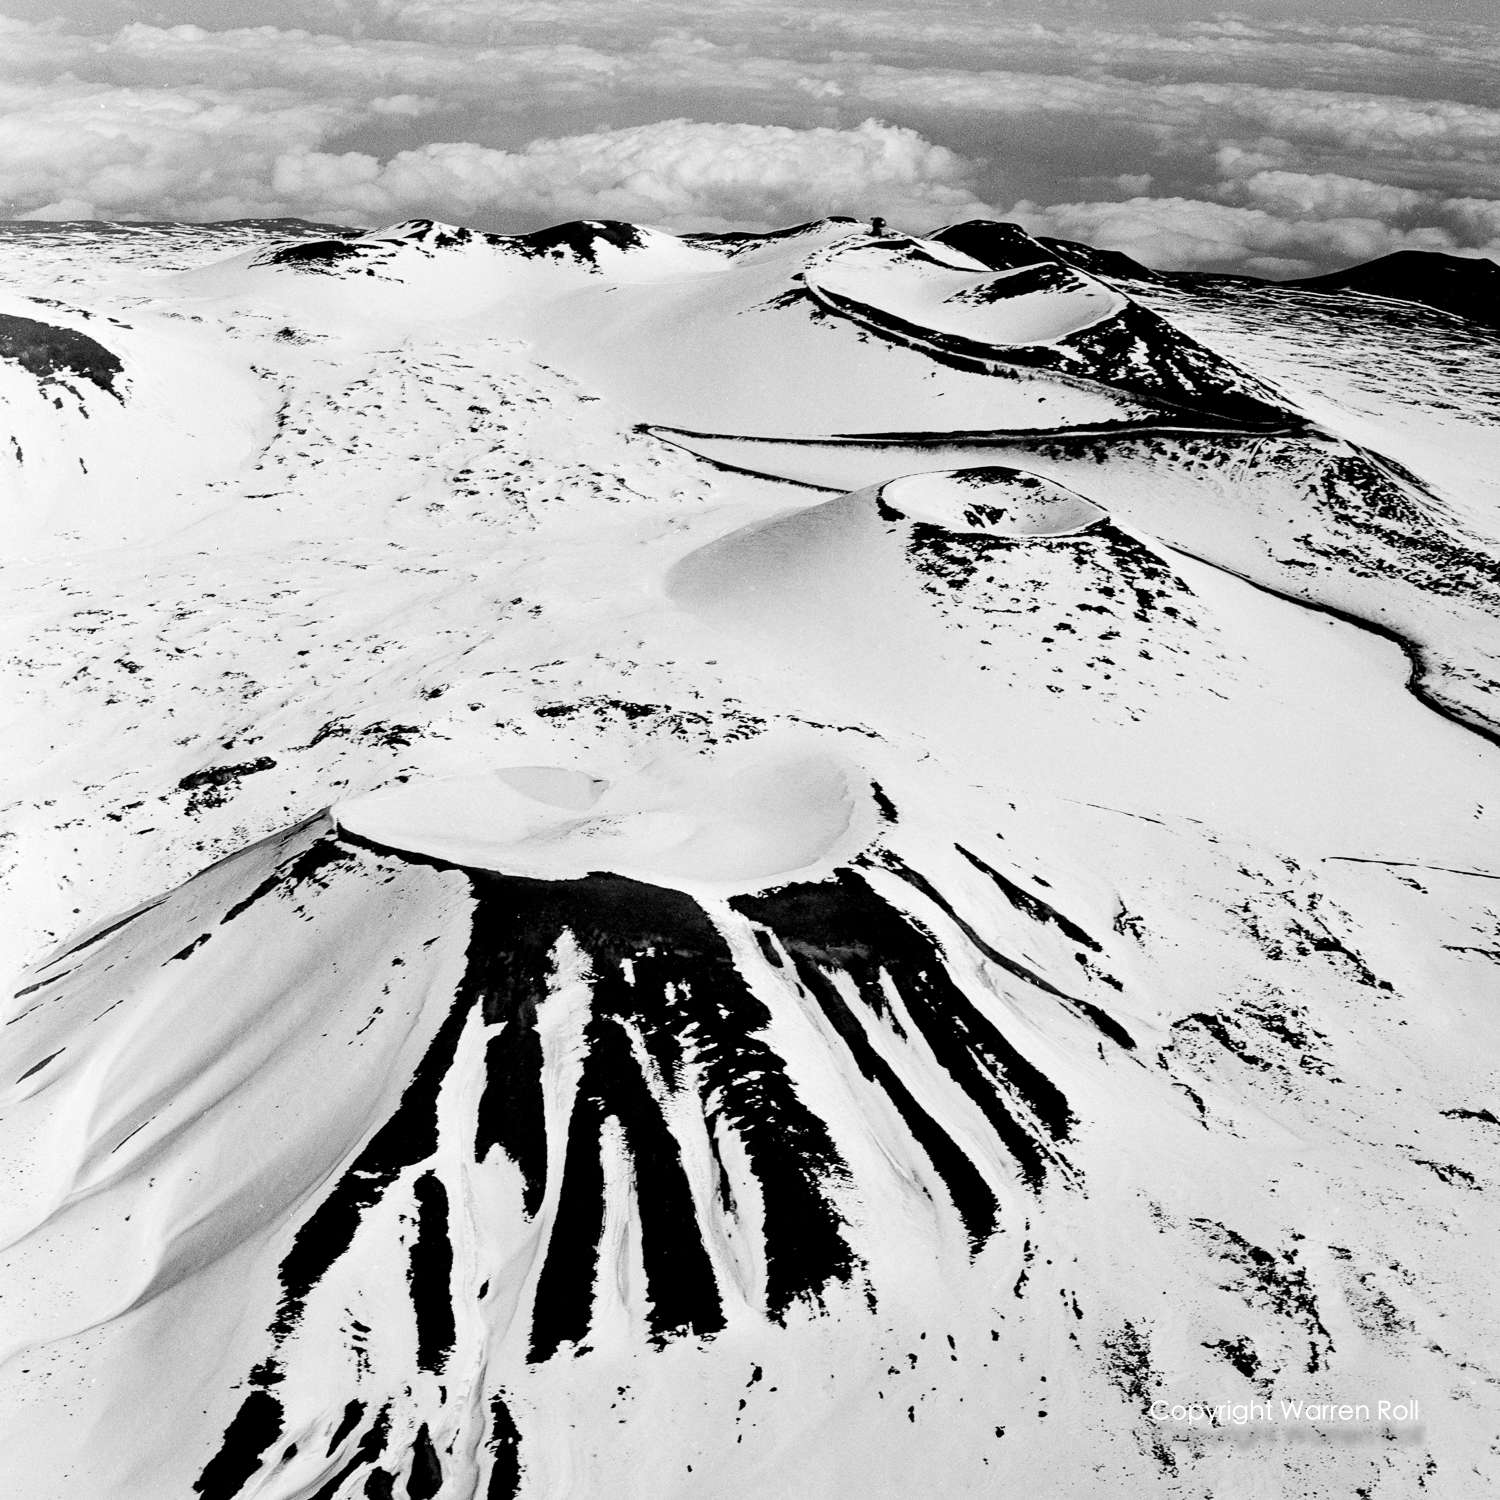 Mauna Kea Summit 1968 taken by Warren Roll/Star-Bulletin